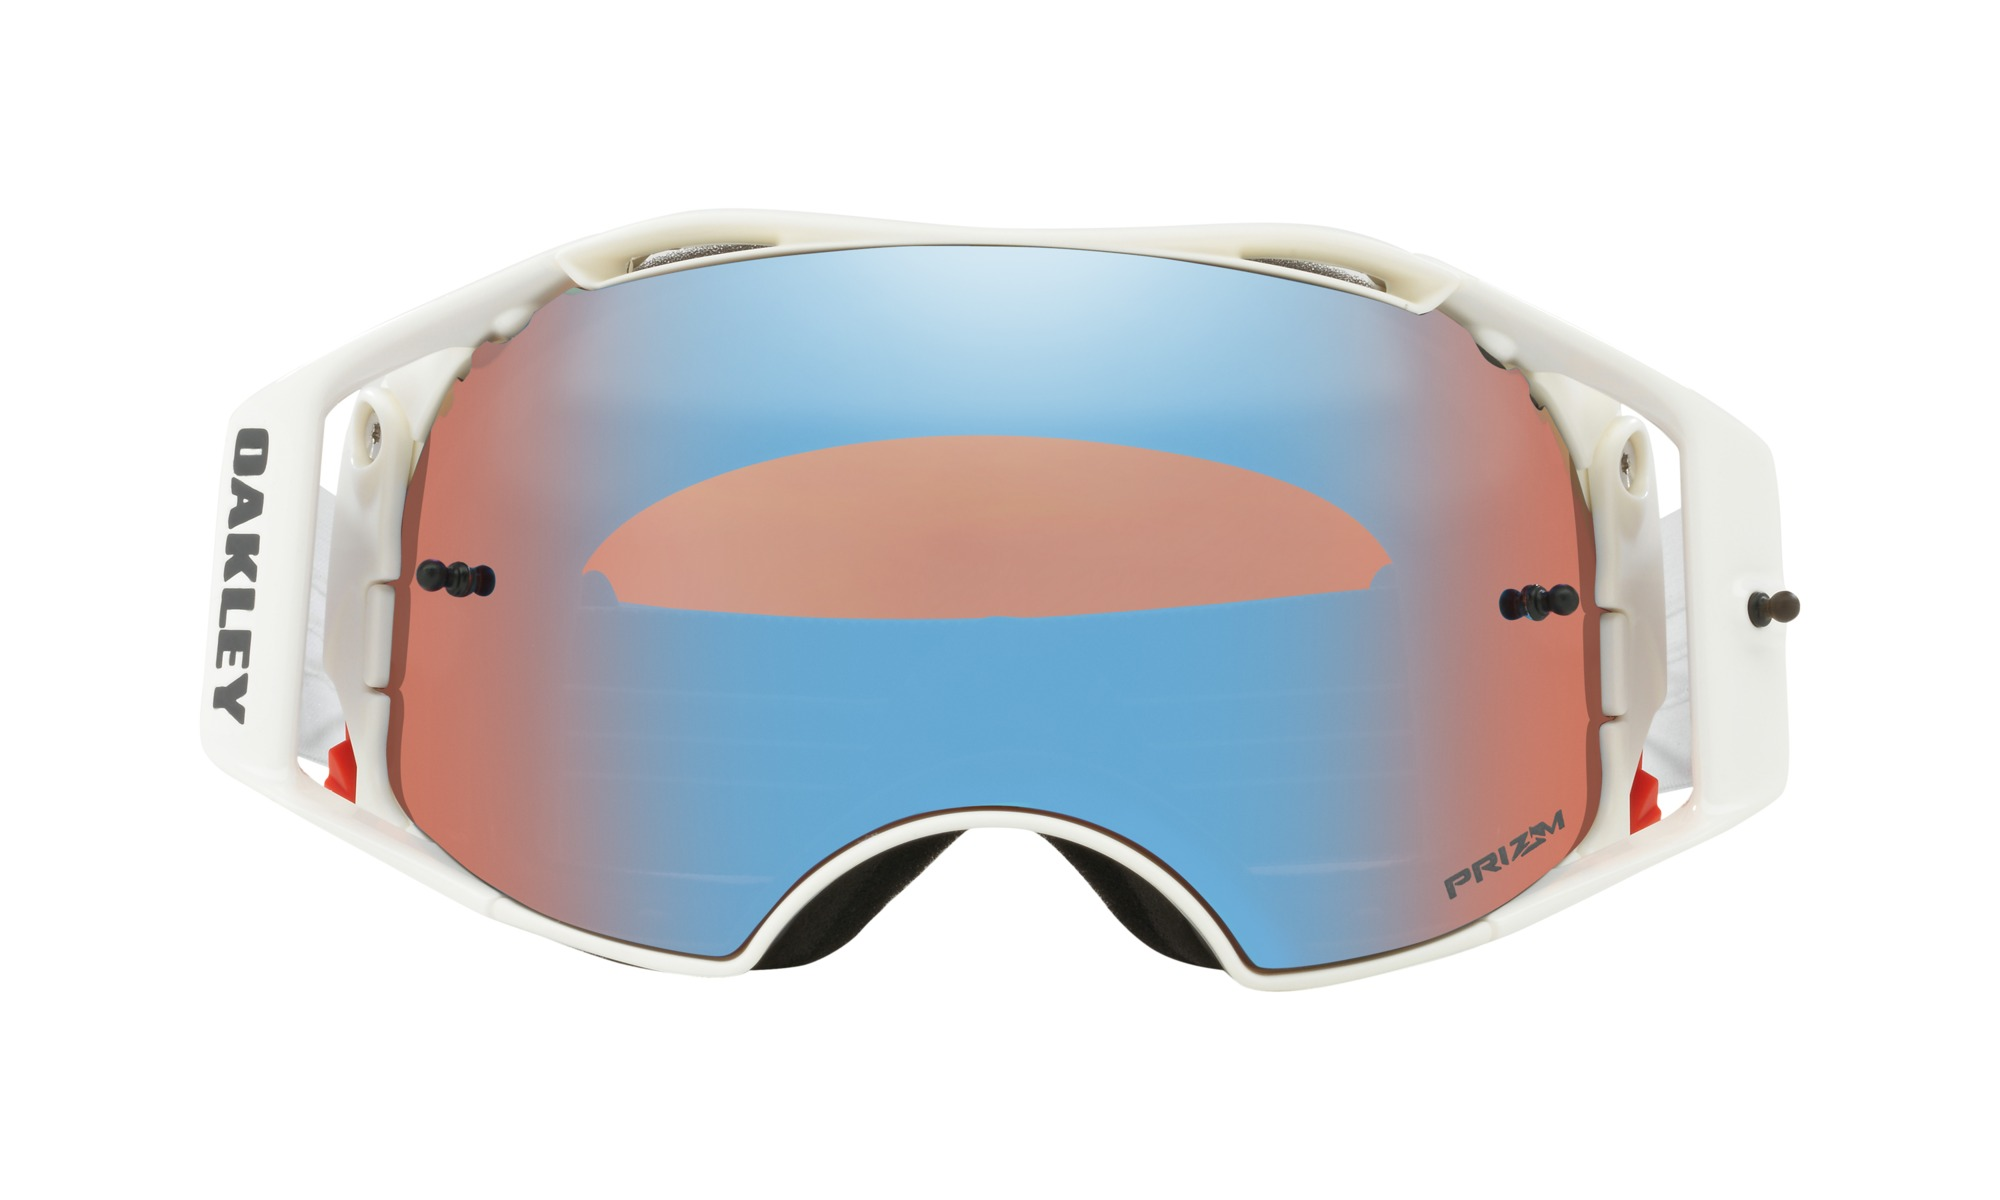 89f1b475993 Oakley Airbrake MX   Factory Pilot Whiteout   Prizm Mx Sapphire   Ref.  OO7046-